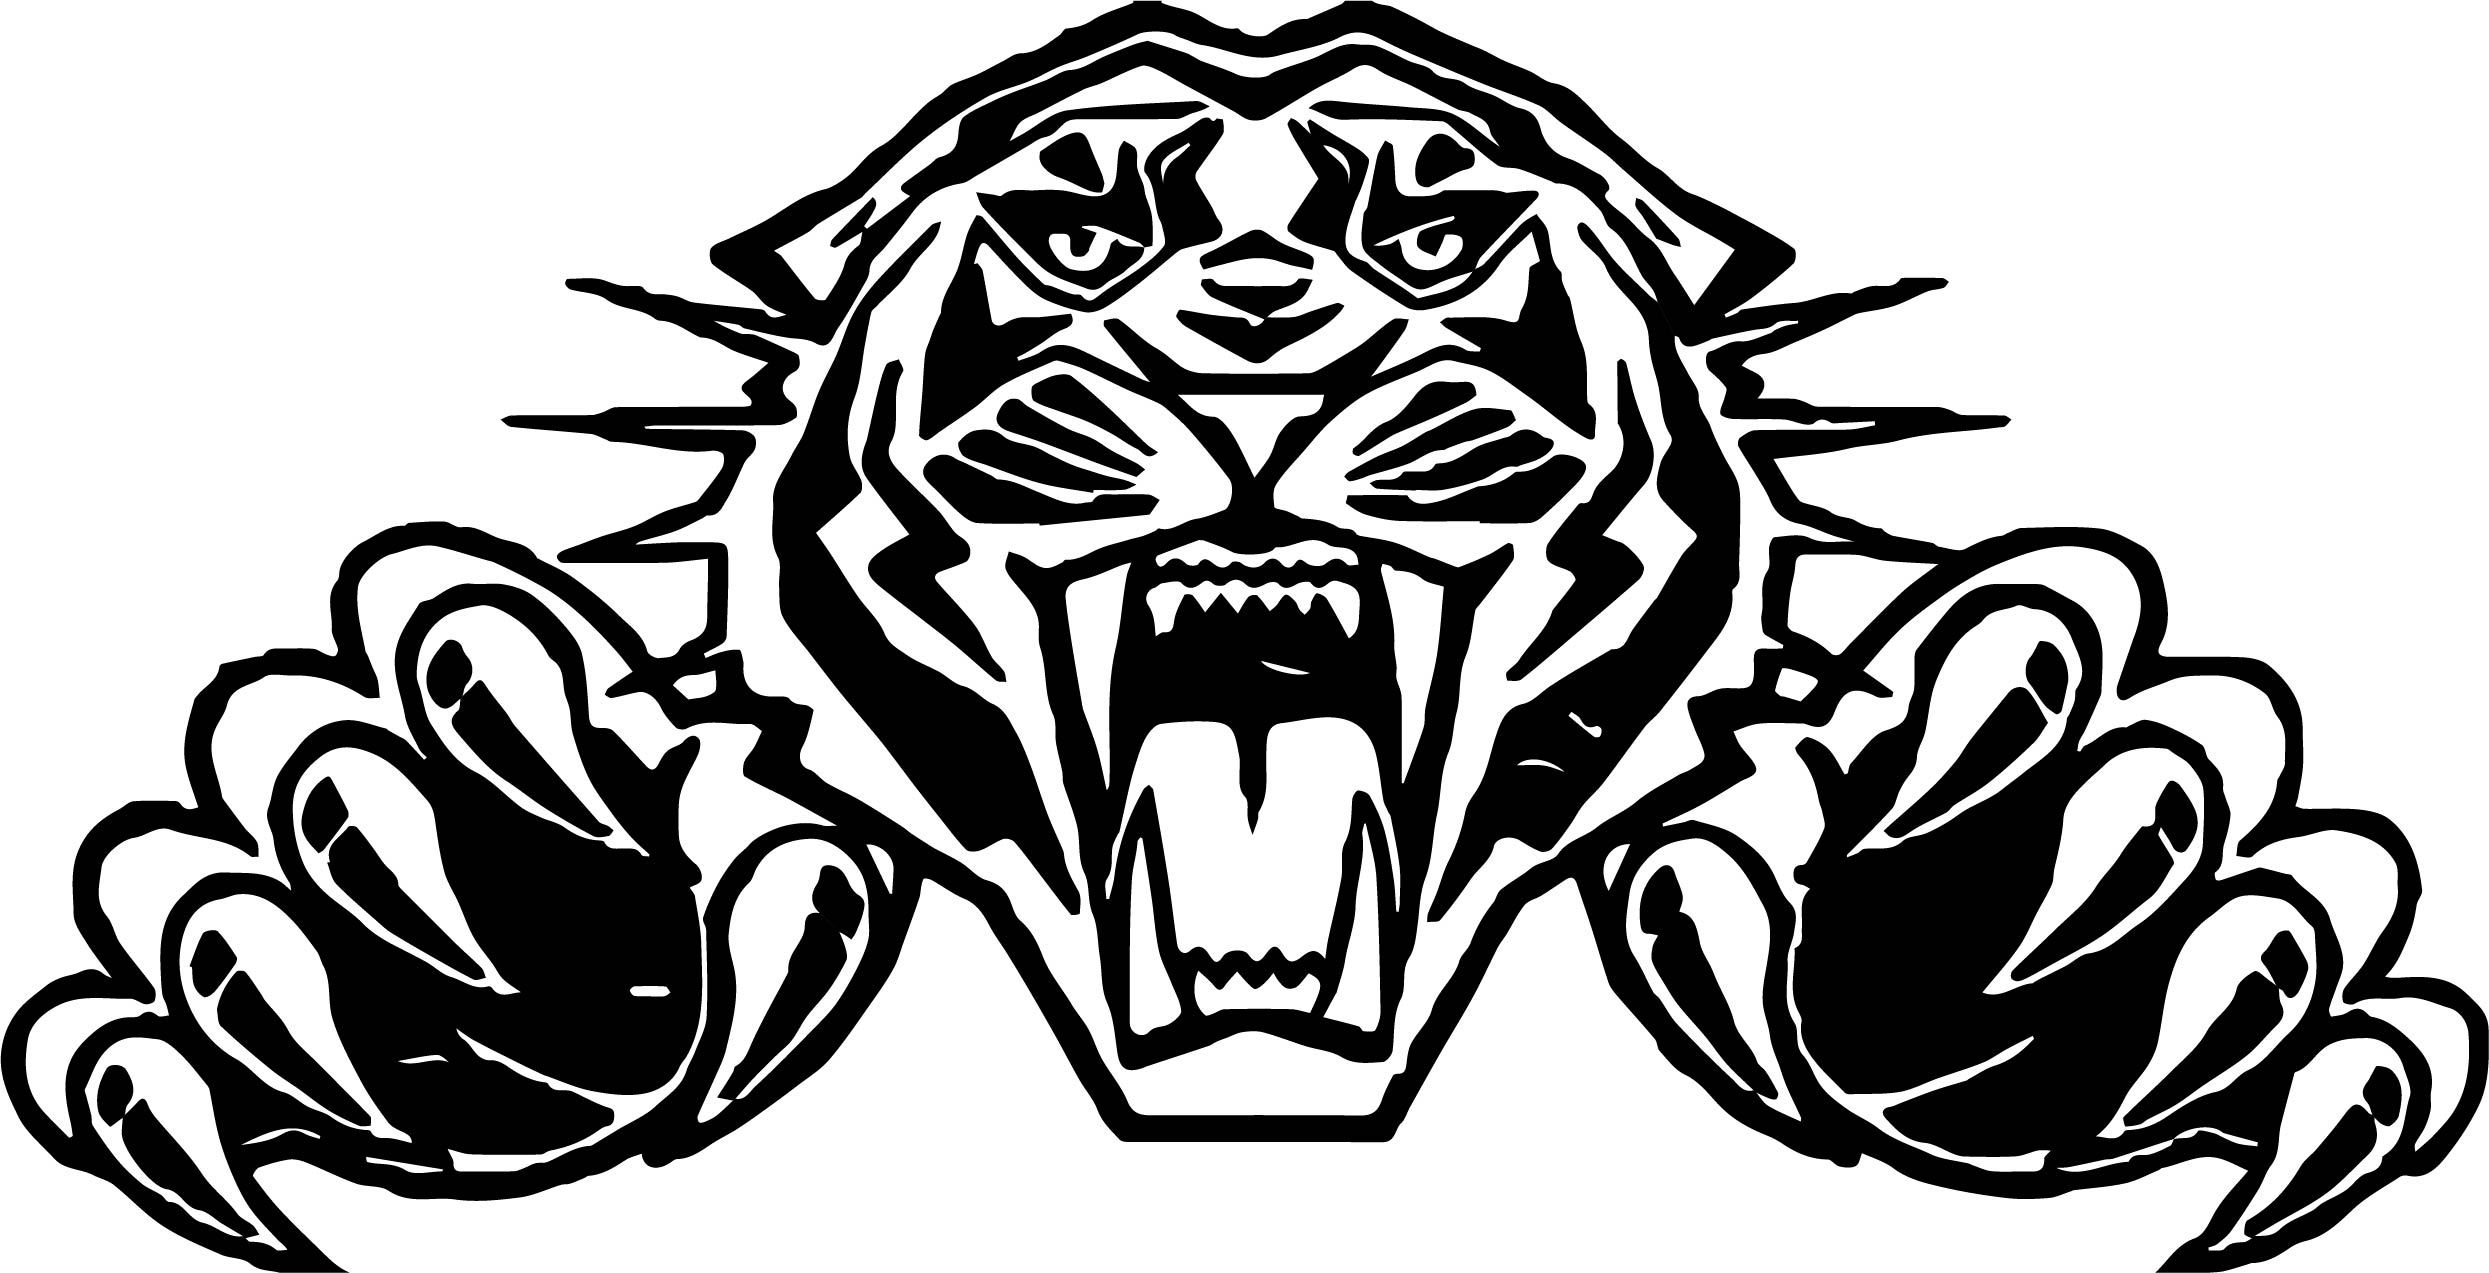 Tiger Football Coloring Pages. Tiger Attack Face Coloring Page  Wecoloringpage